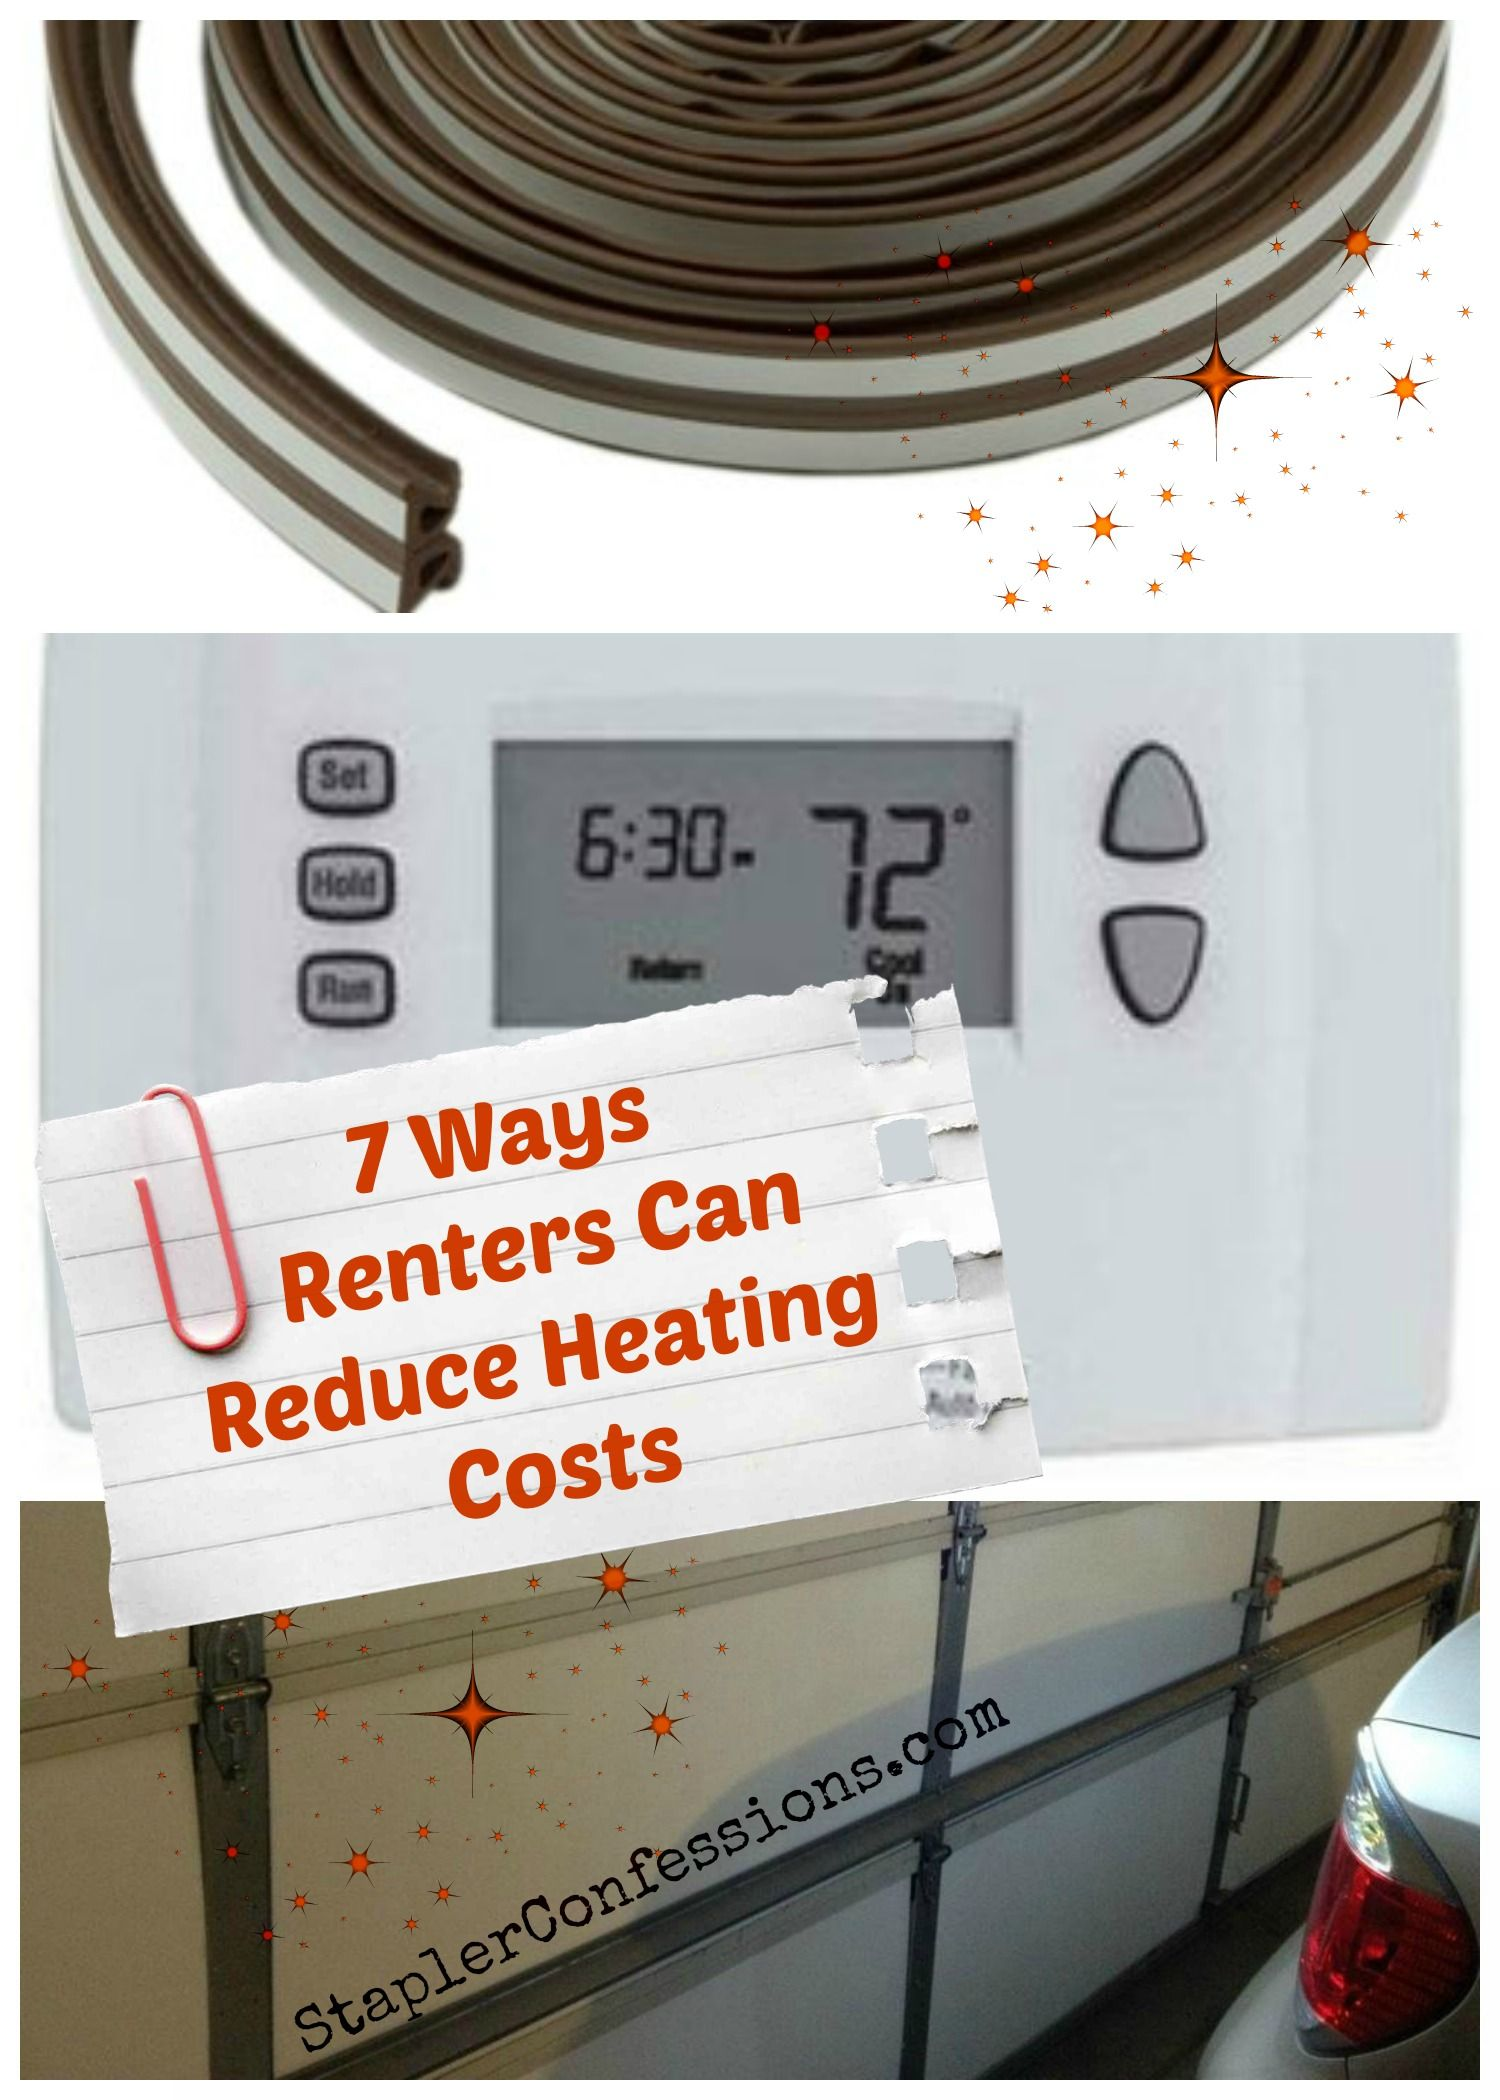 7 Ways Renters Can Reduce Heating Costs